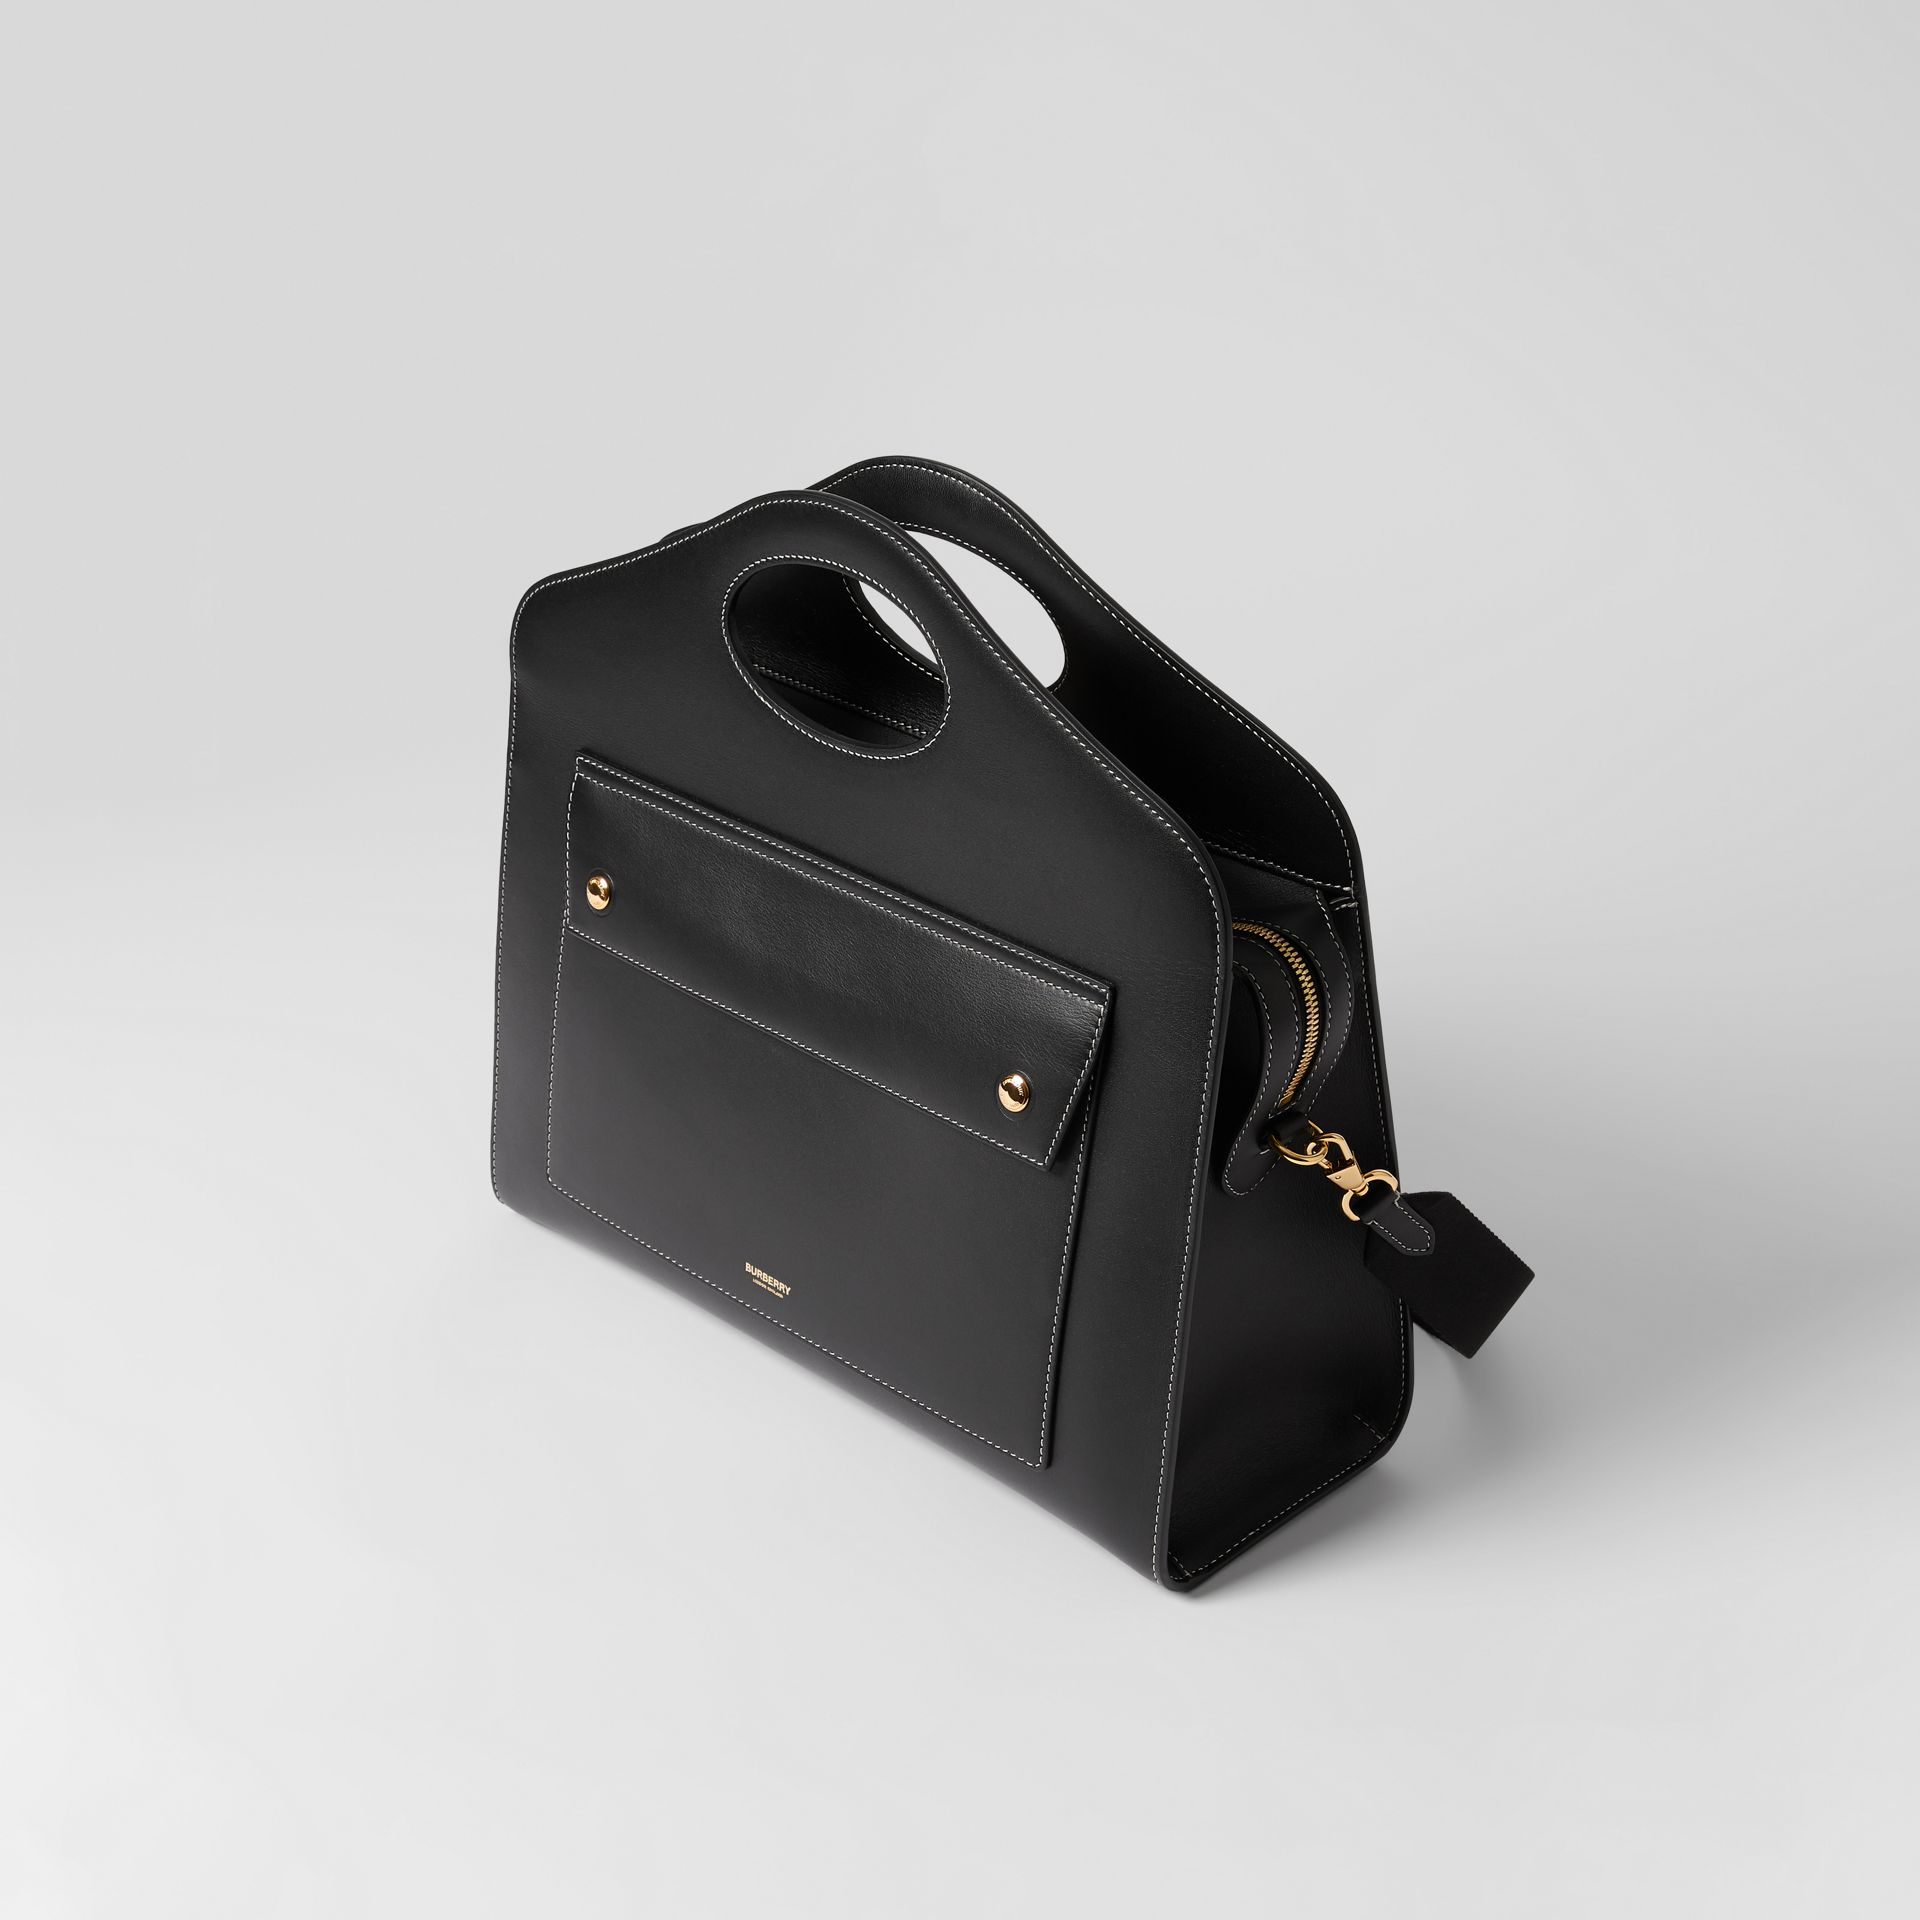 Medium Topstitched Leather Pocket Tote in Black - Women | Burberry - gallery image 3